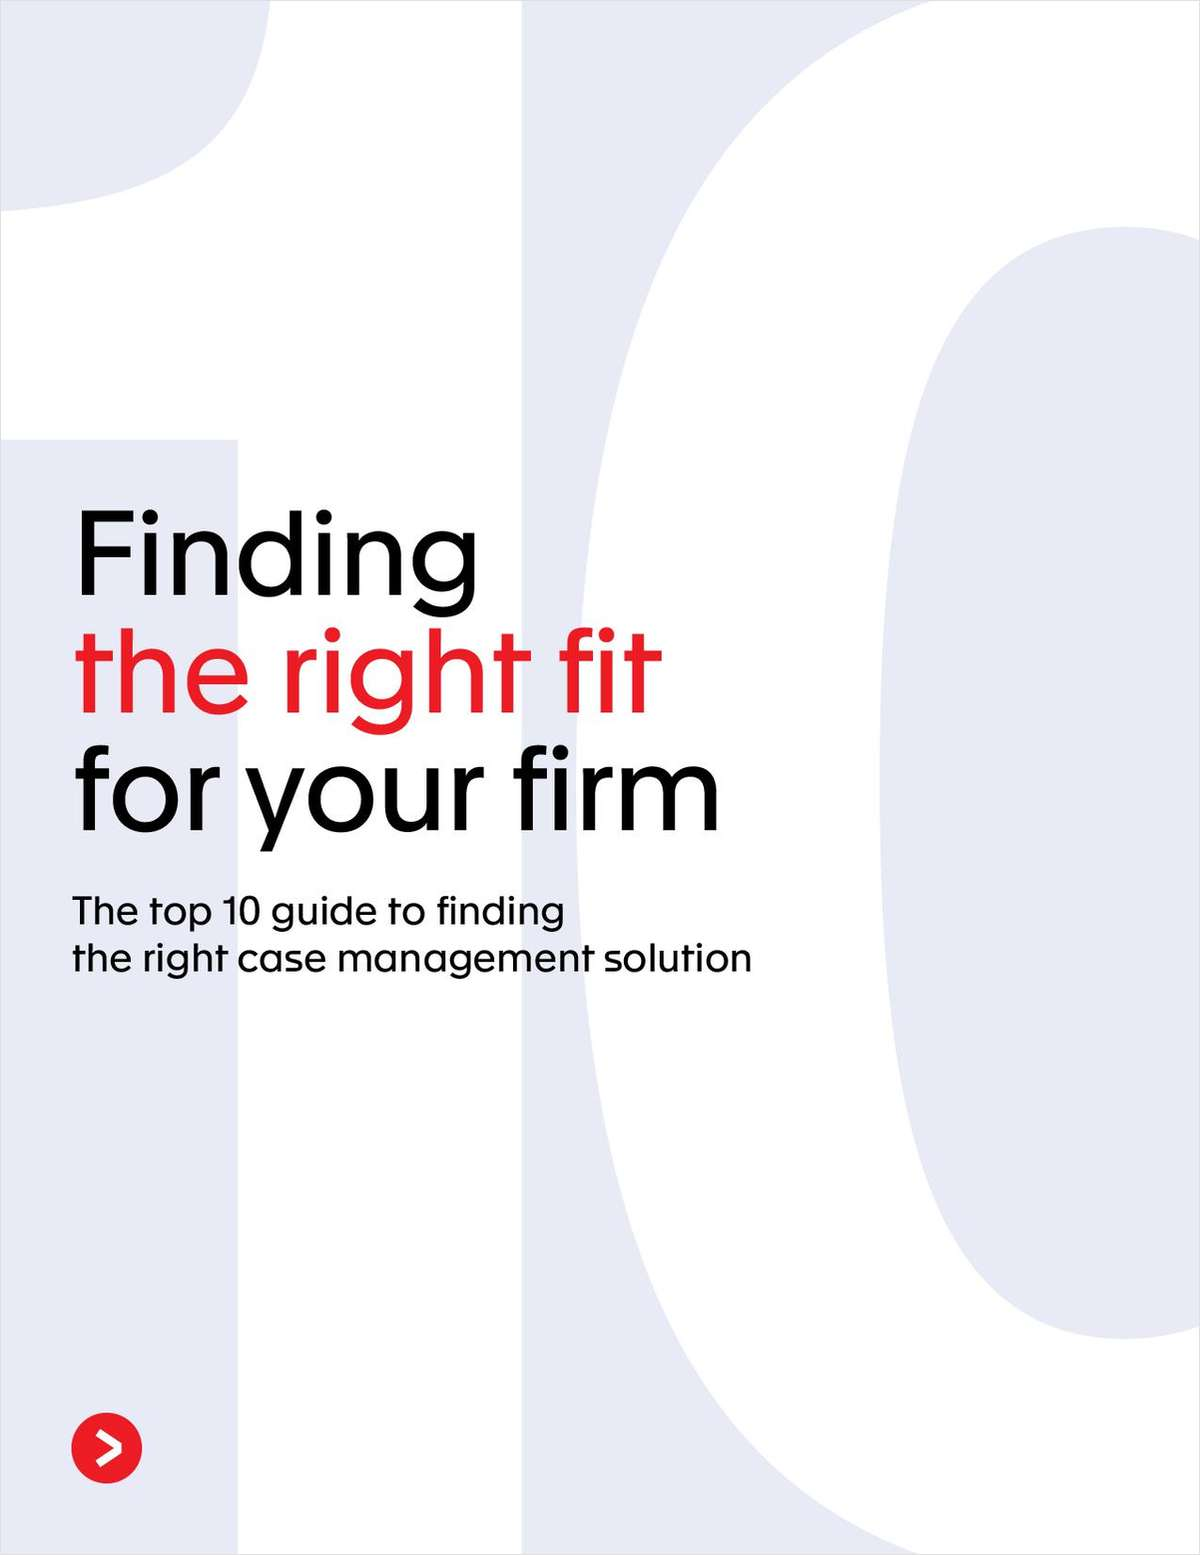 Finding the Right Fit for Your Firm: Top 10 Guide to Finding the Right Case Management Solution